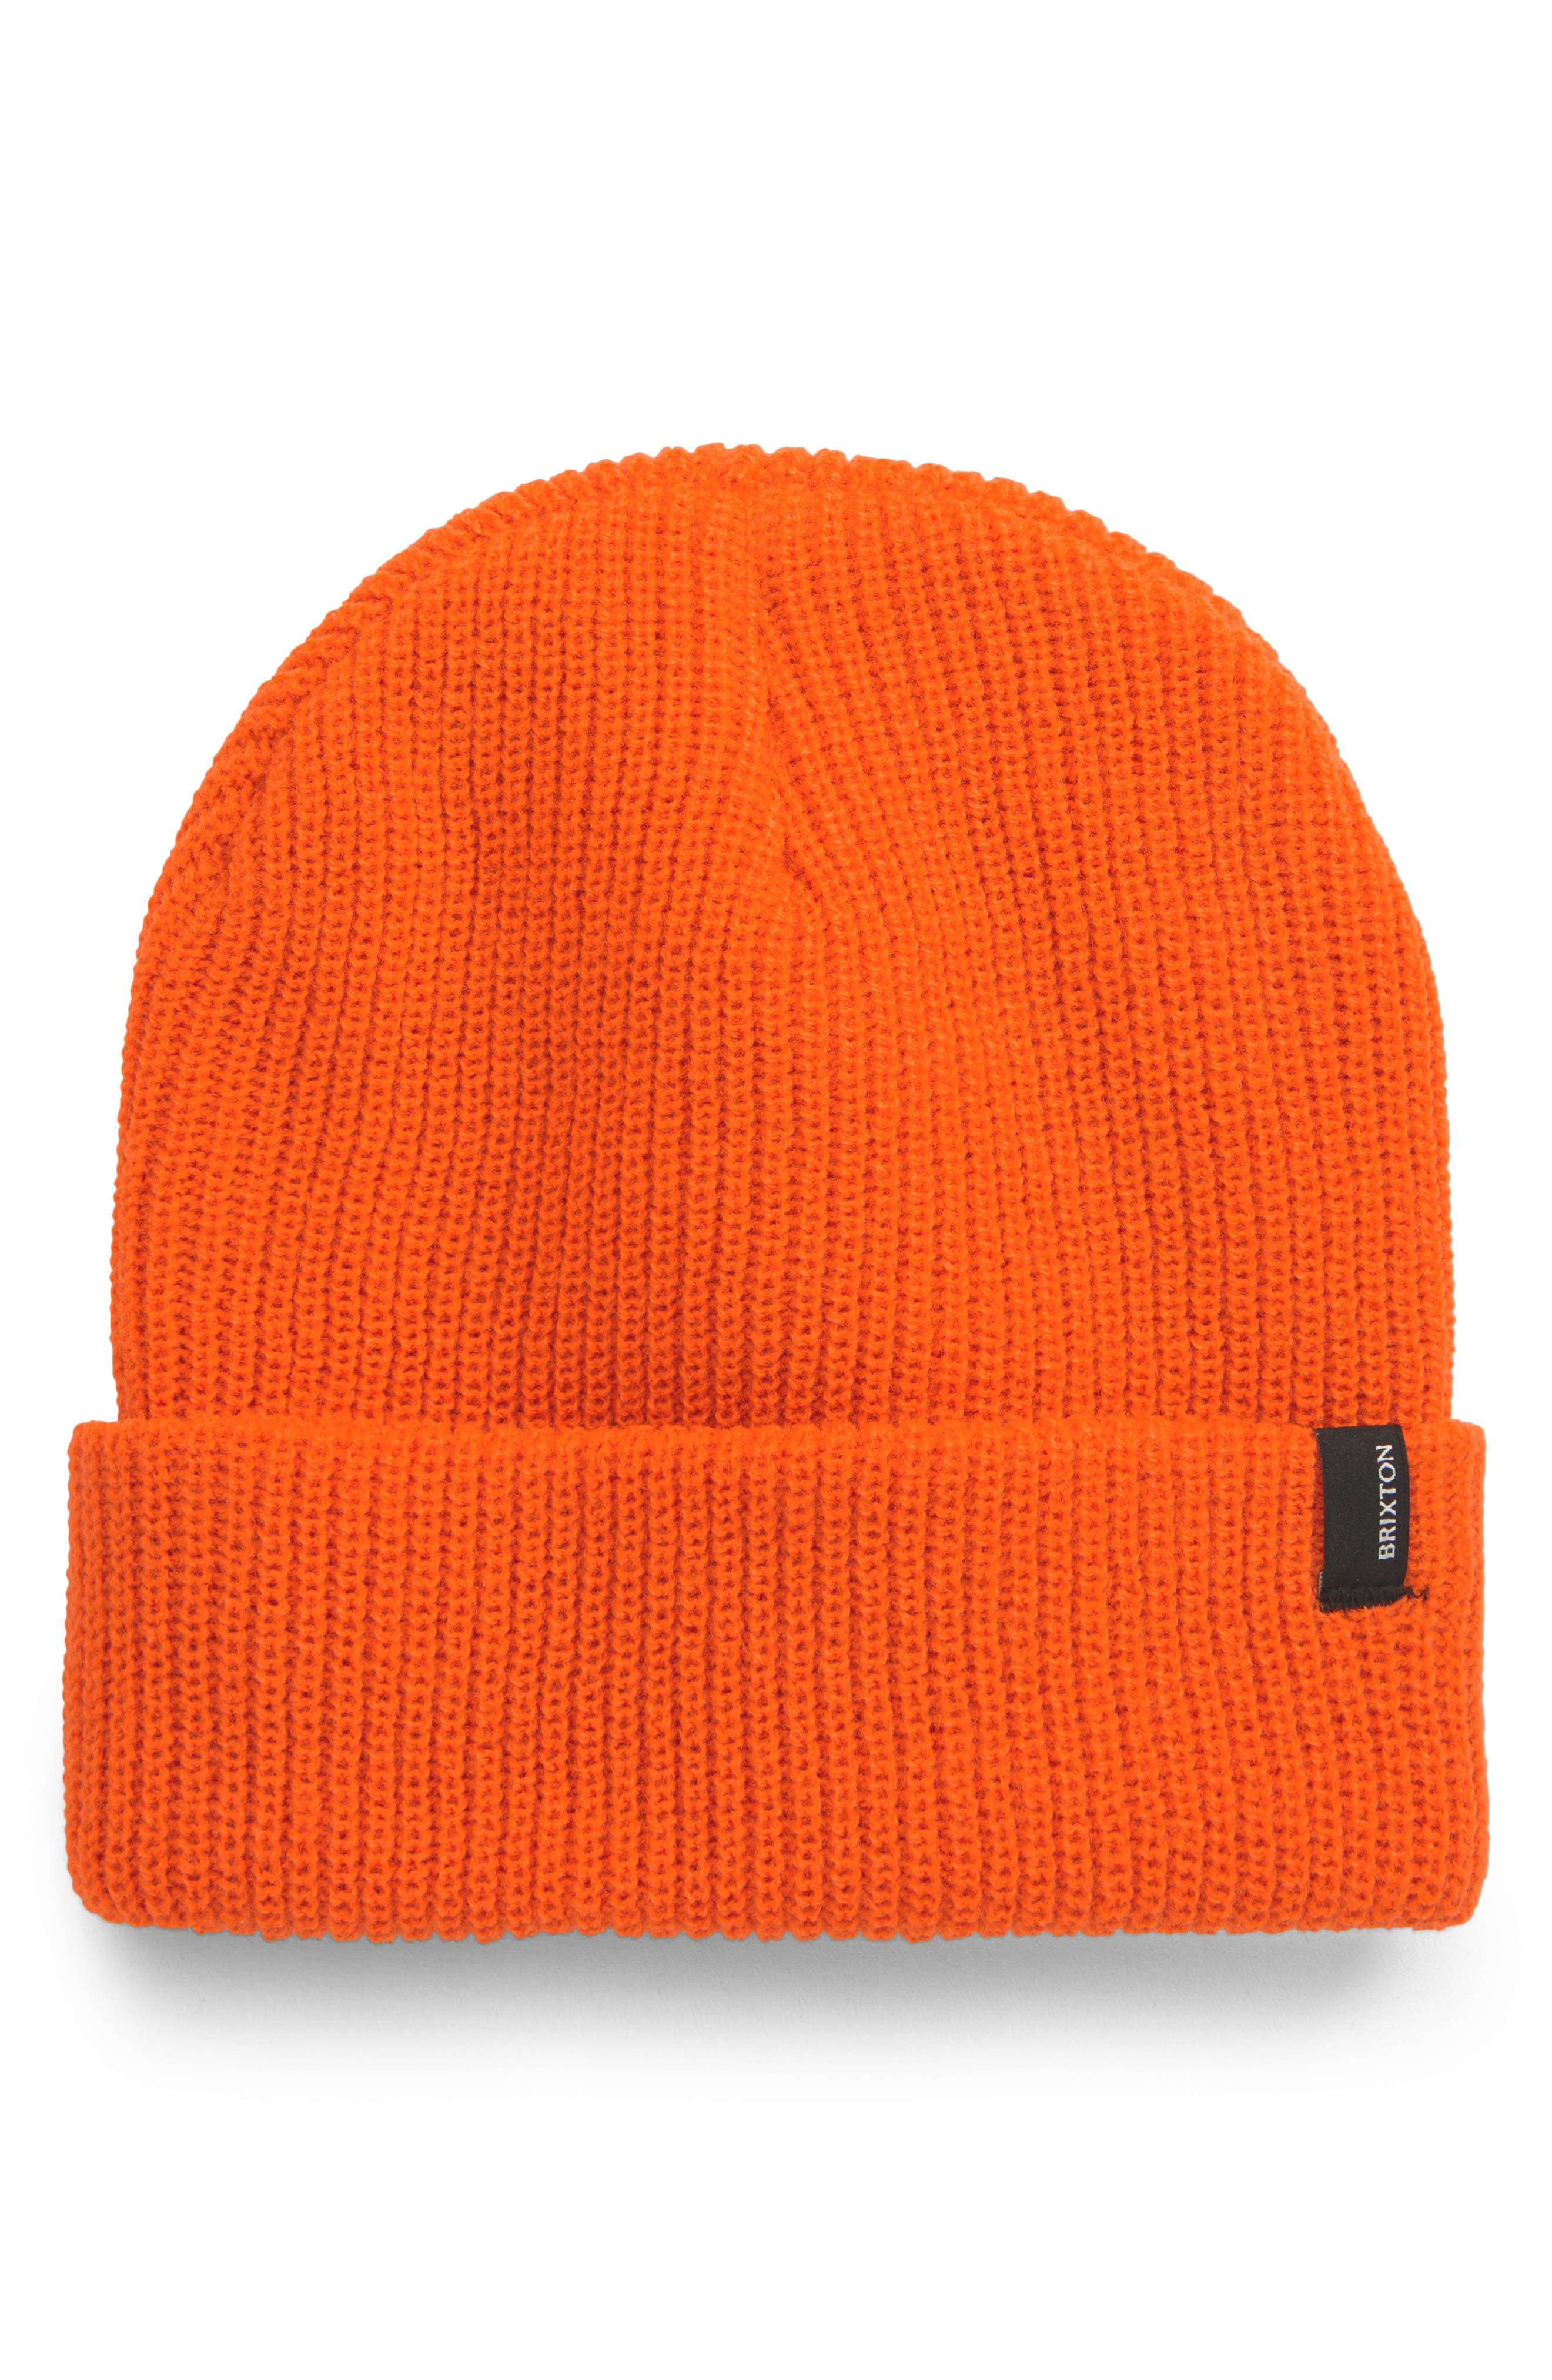 If you want to stay cozy-warm while doing most anything, this cuffed wool hat is right for the job. Style Name: Brixton Heist Beanie. Style Number: 6133480. Available in stores.